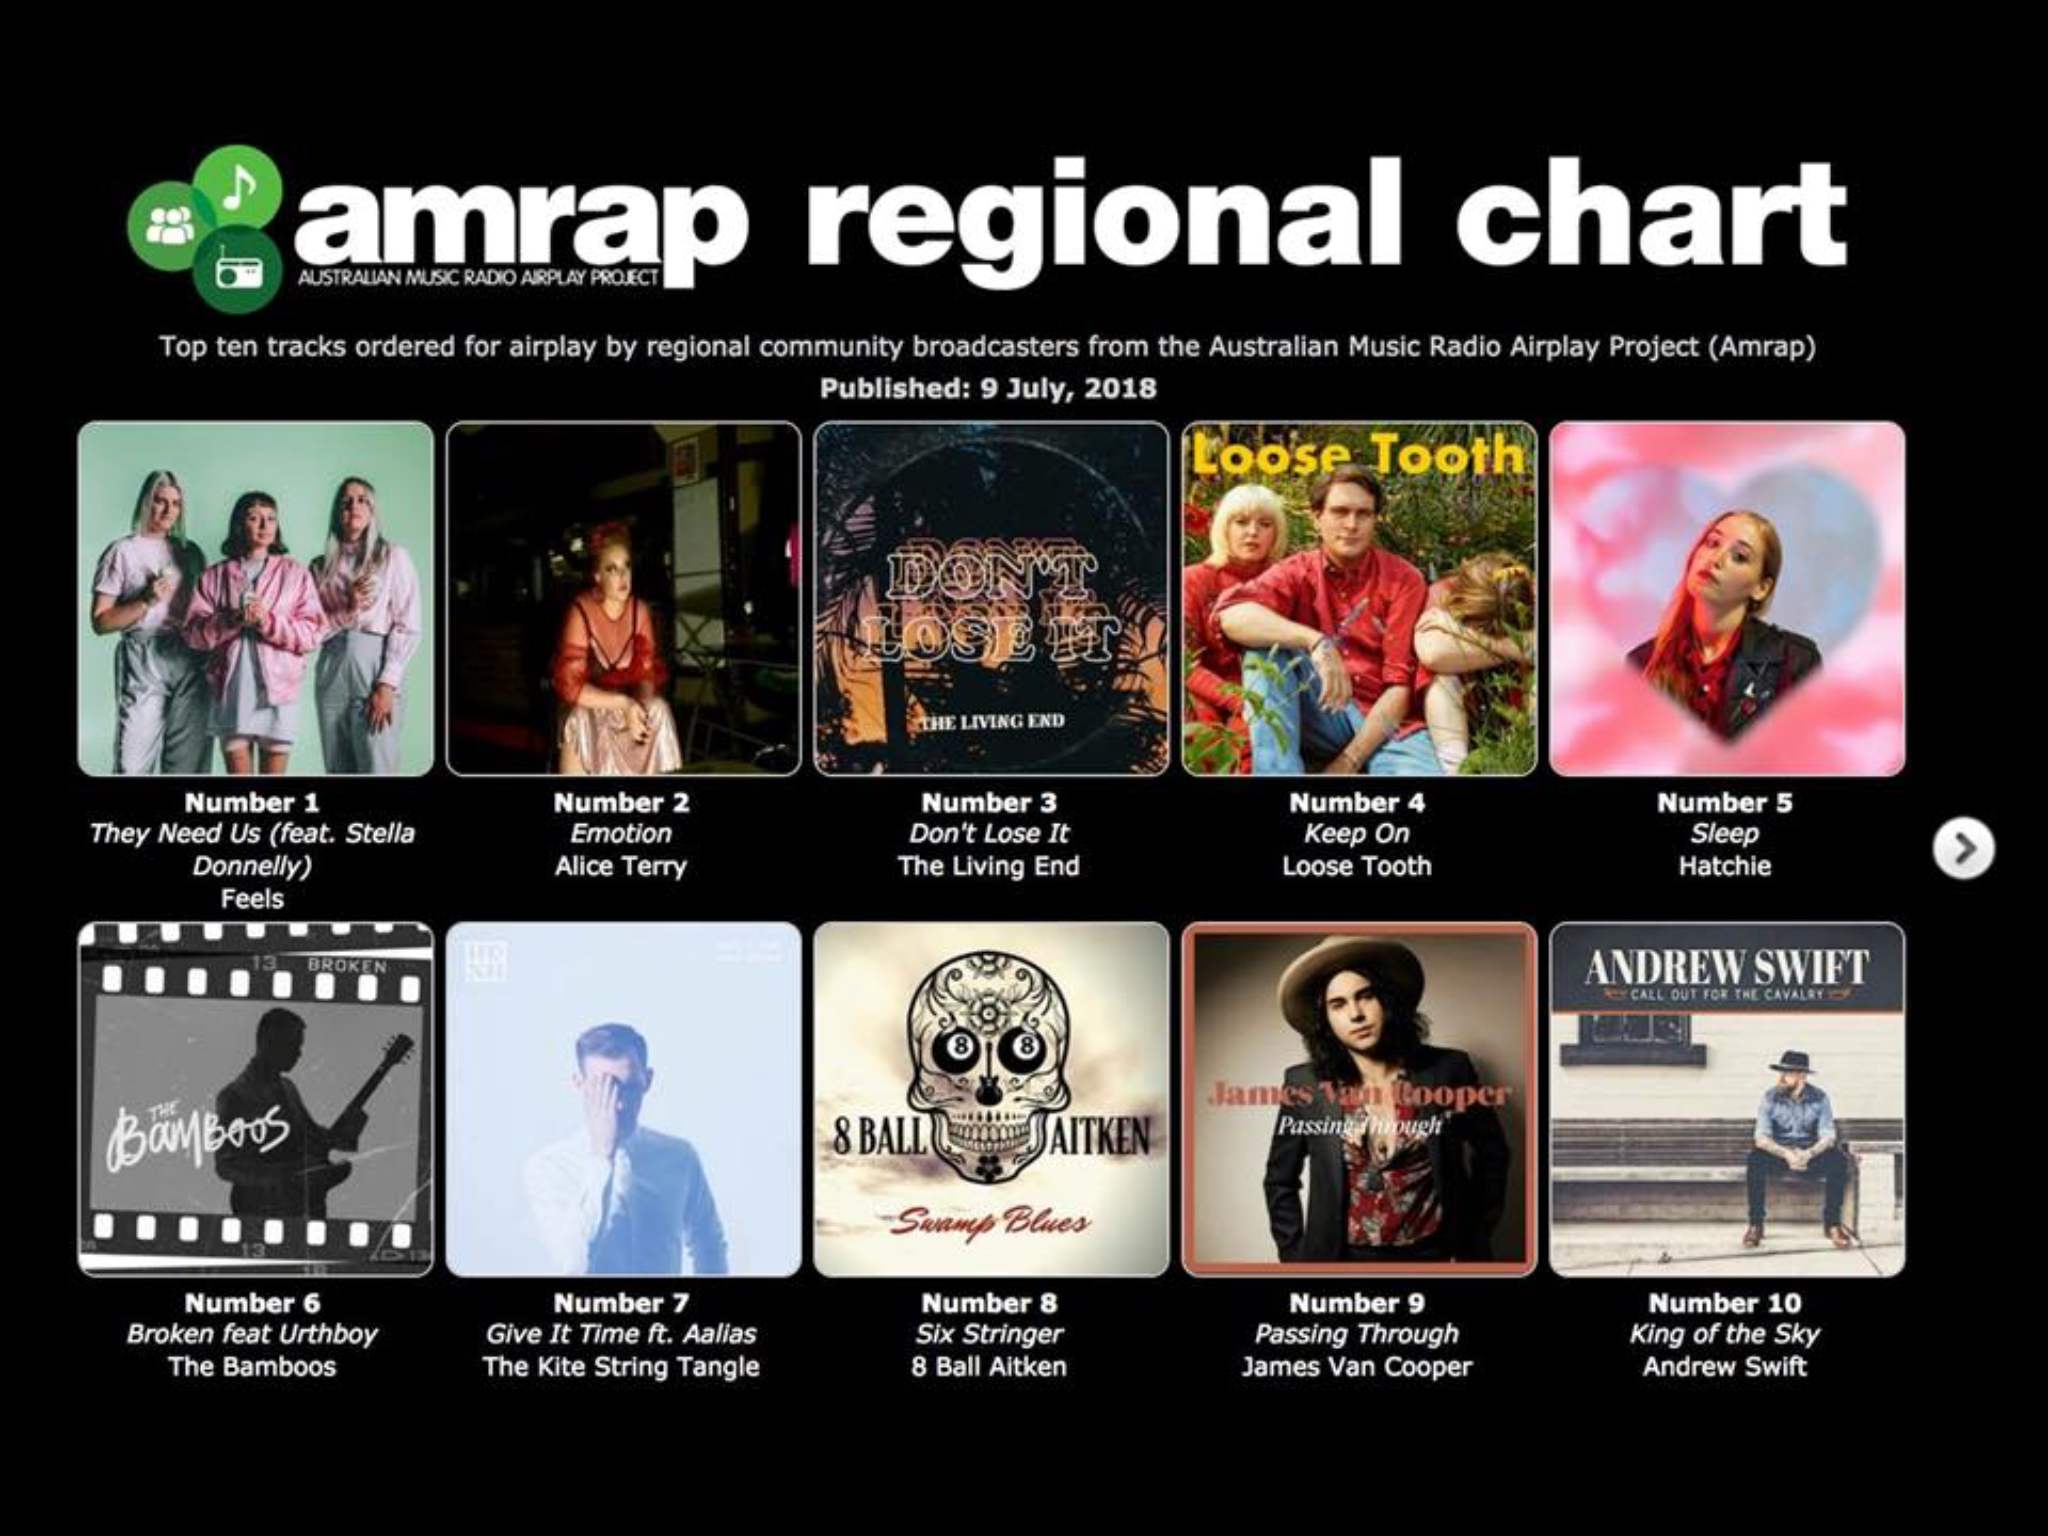 'Passing Through' single number 9 on the Amrap Regional Charts